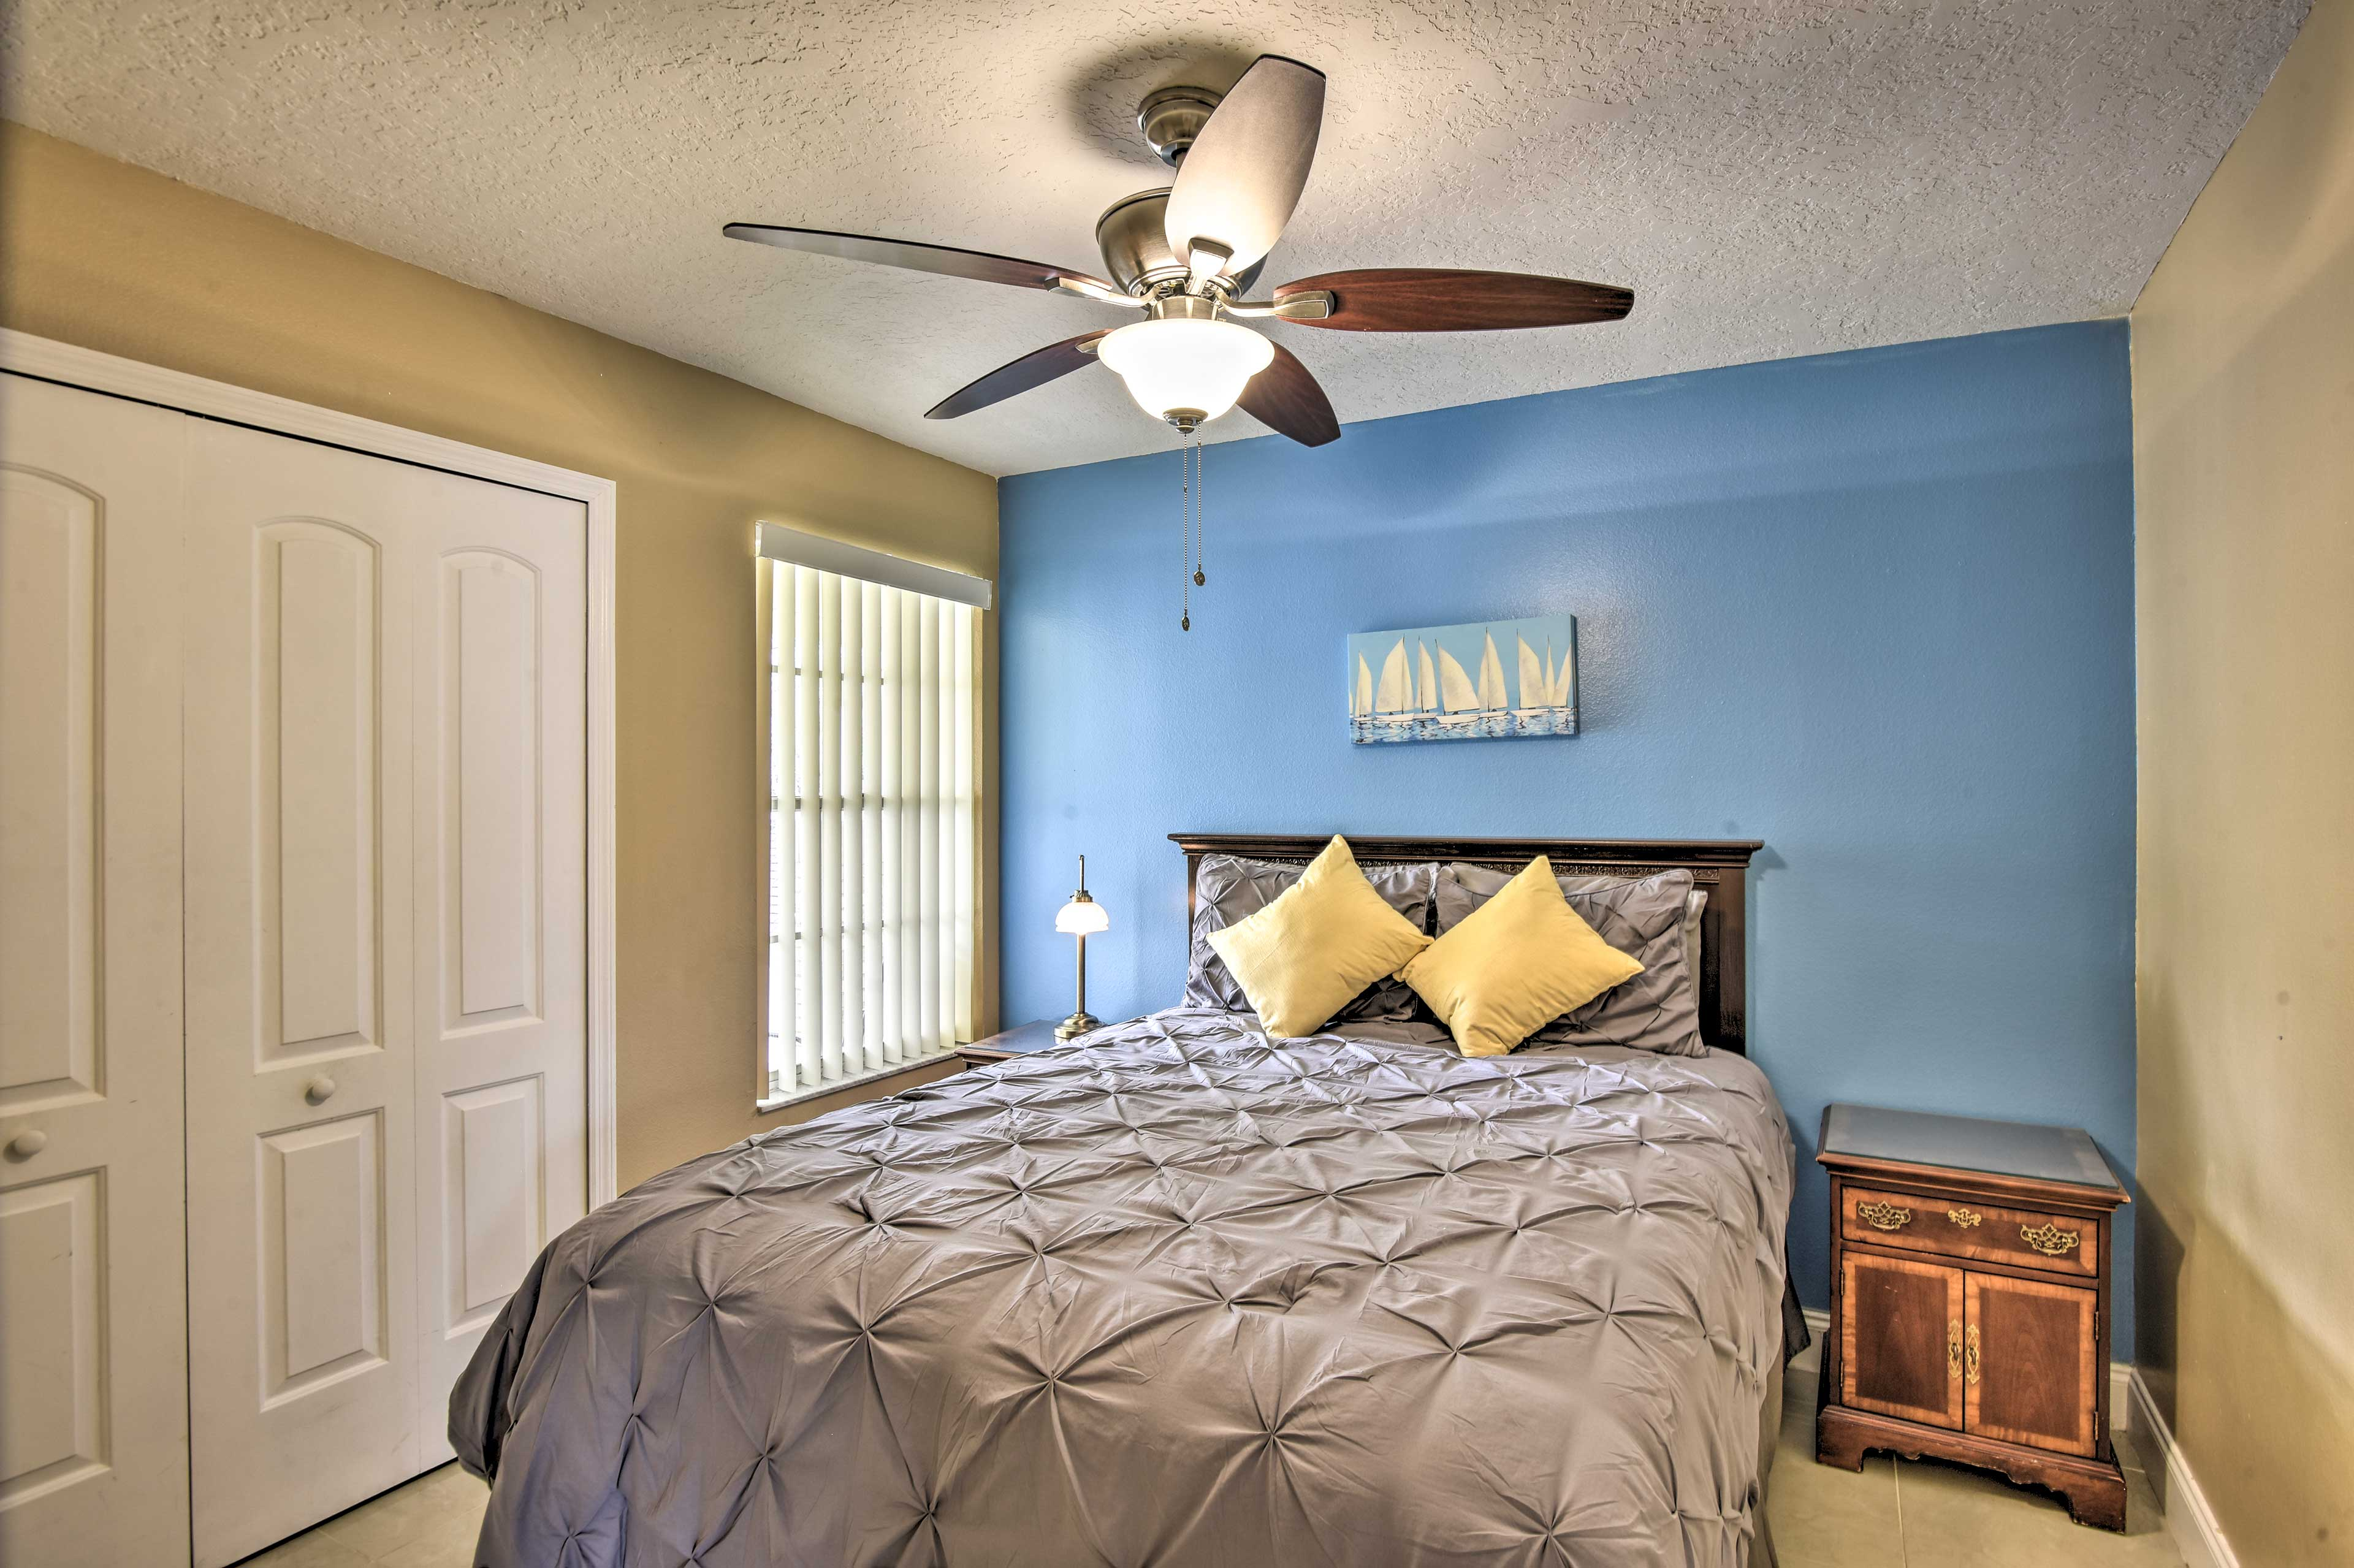 The second bedroom features a comfortably made queen bed.